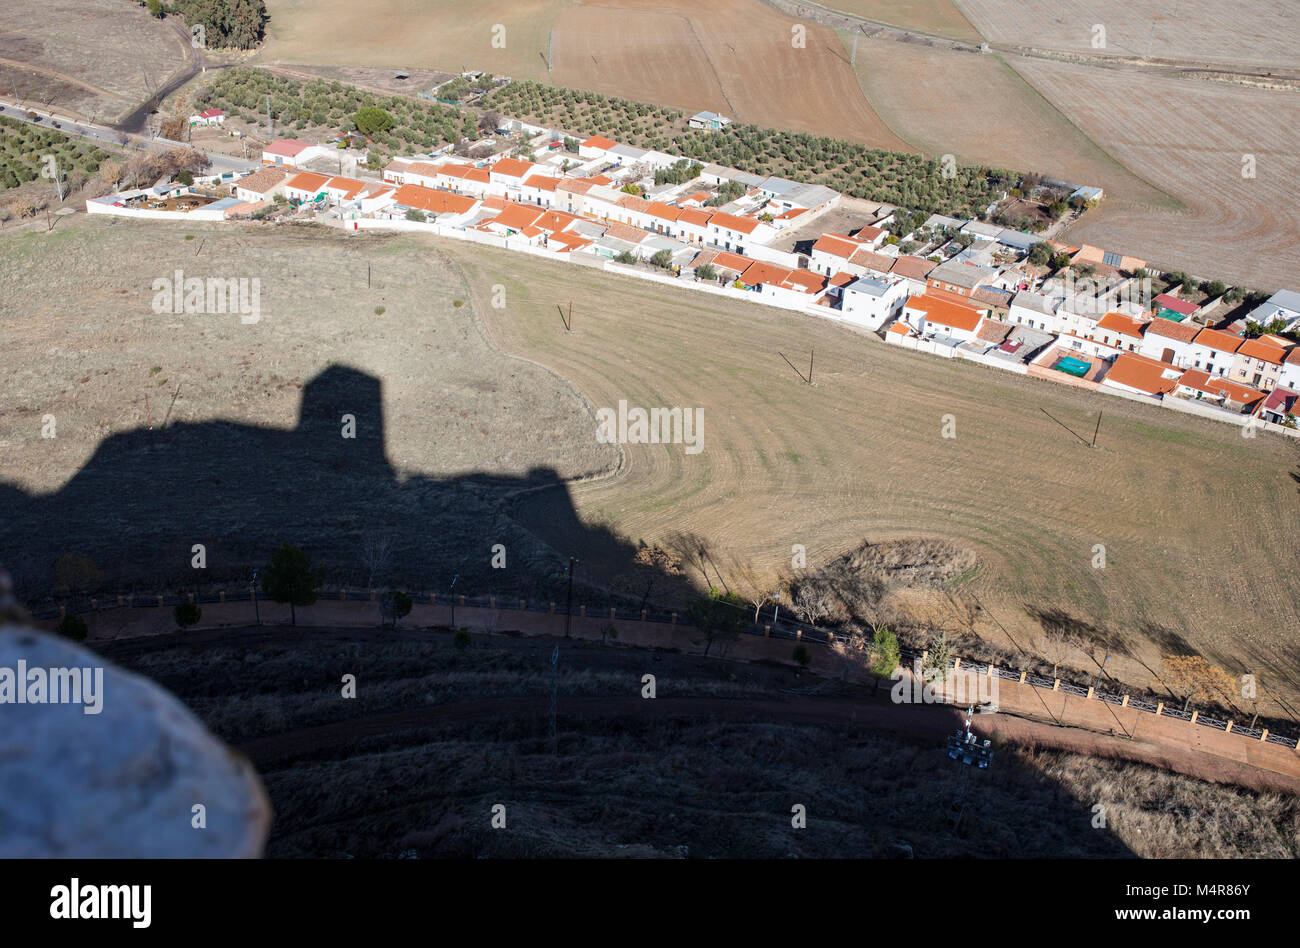 Castle of Belmez shadow getting close to town, Cordoba, Spain. Situated on the high rocky hill overlooking town - Stock Image